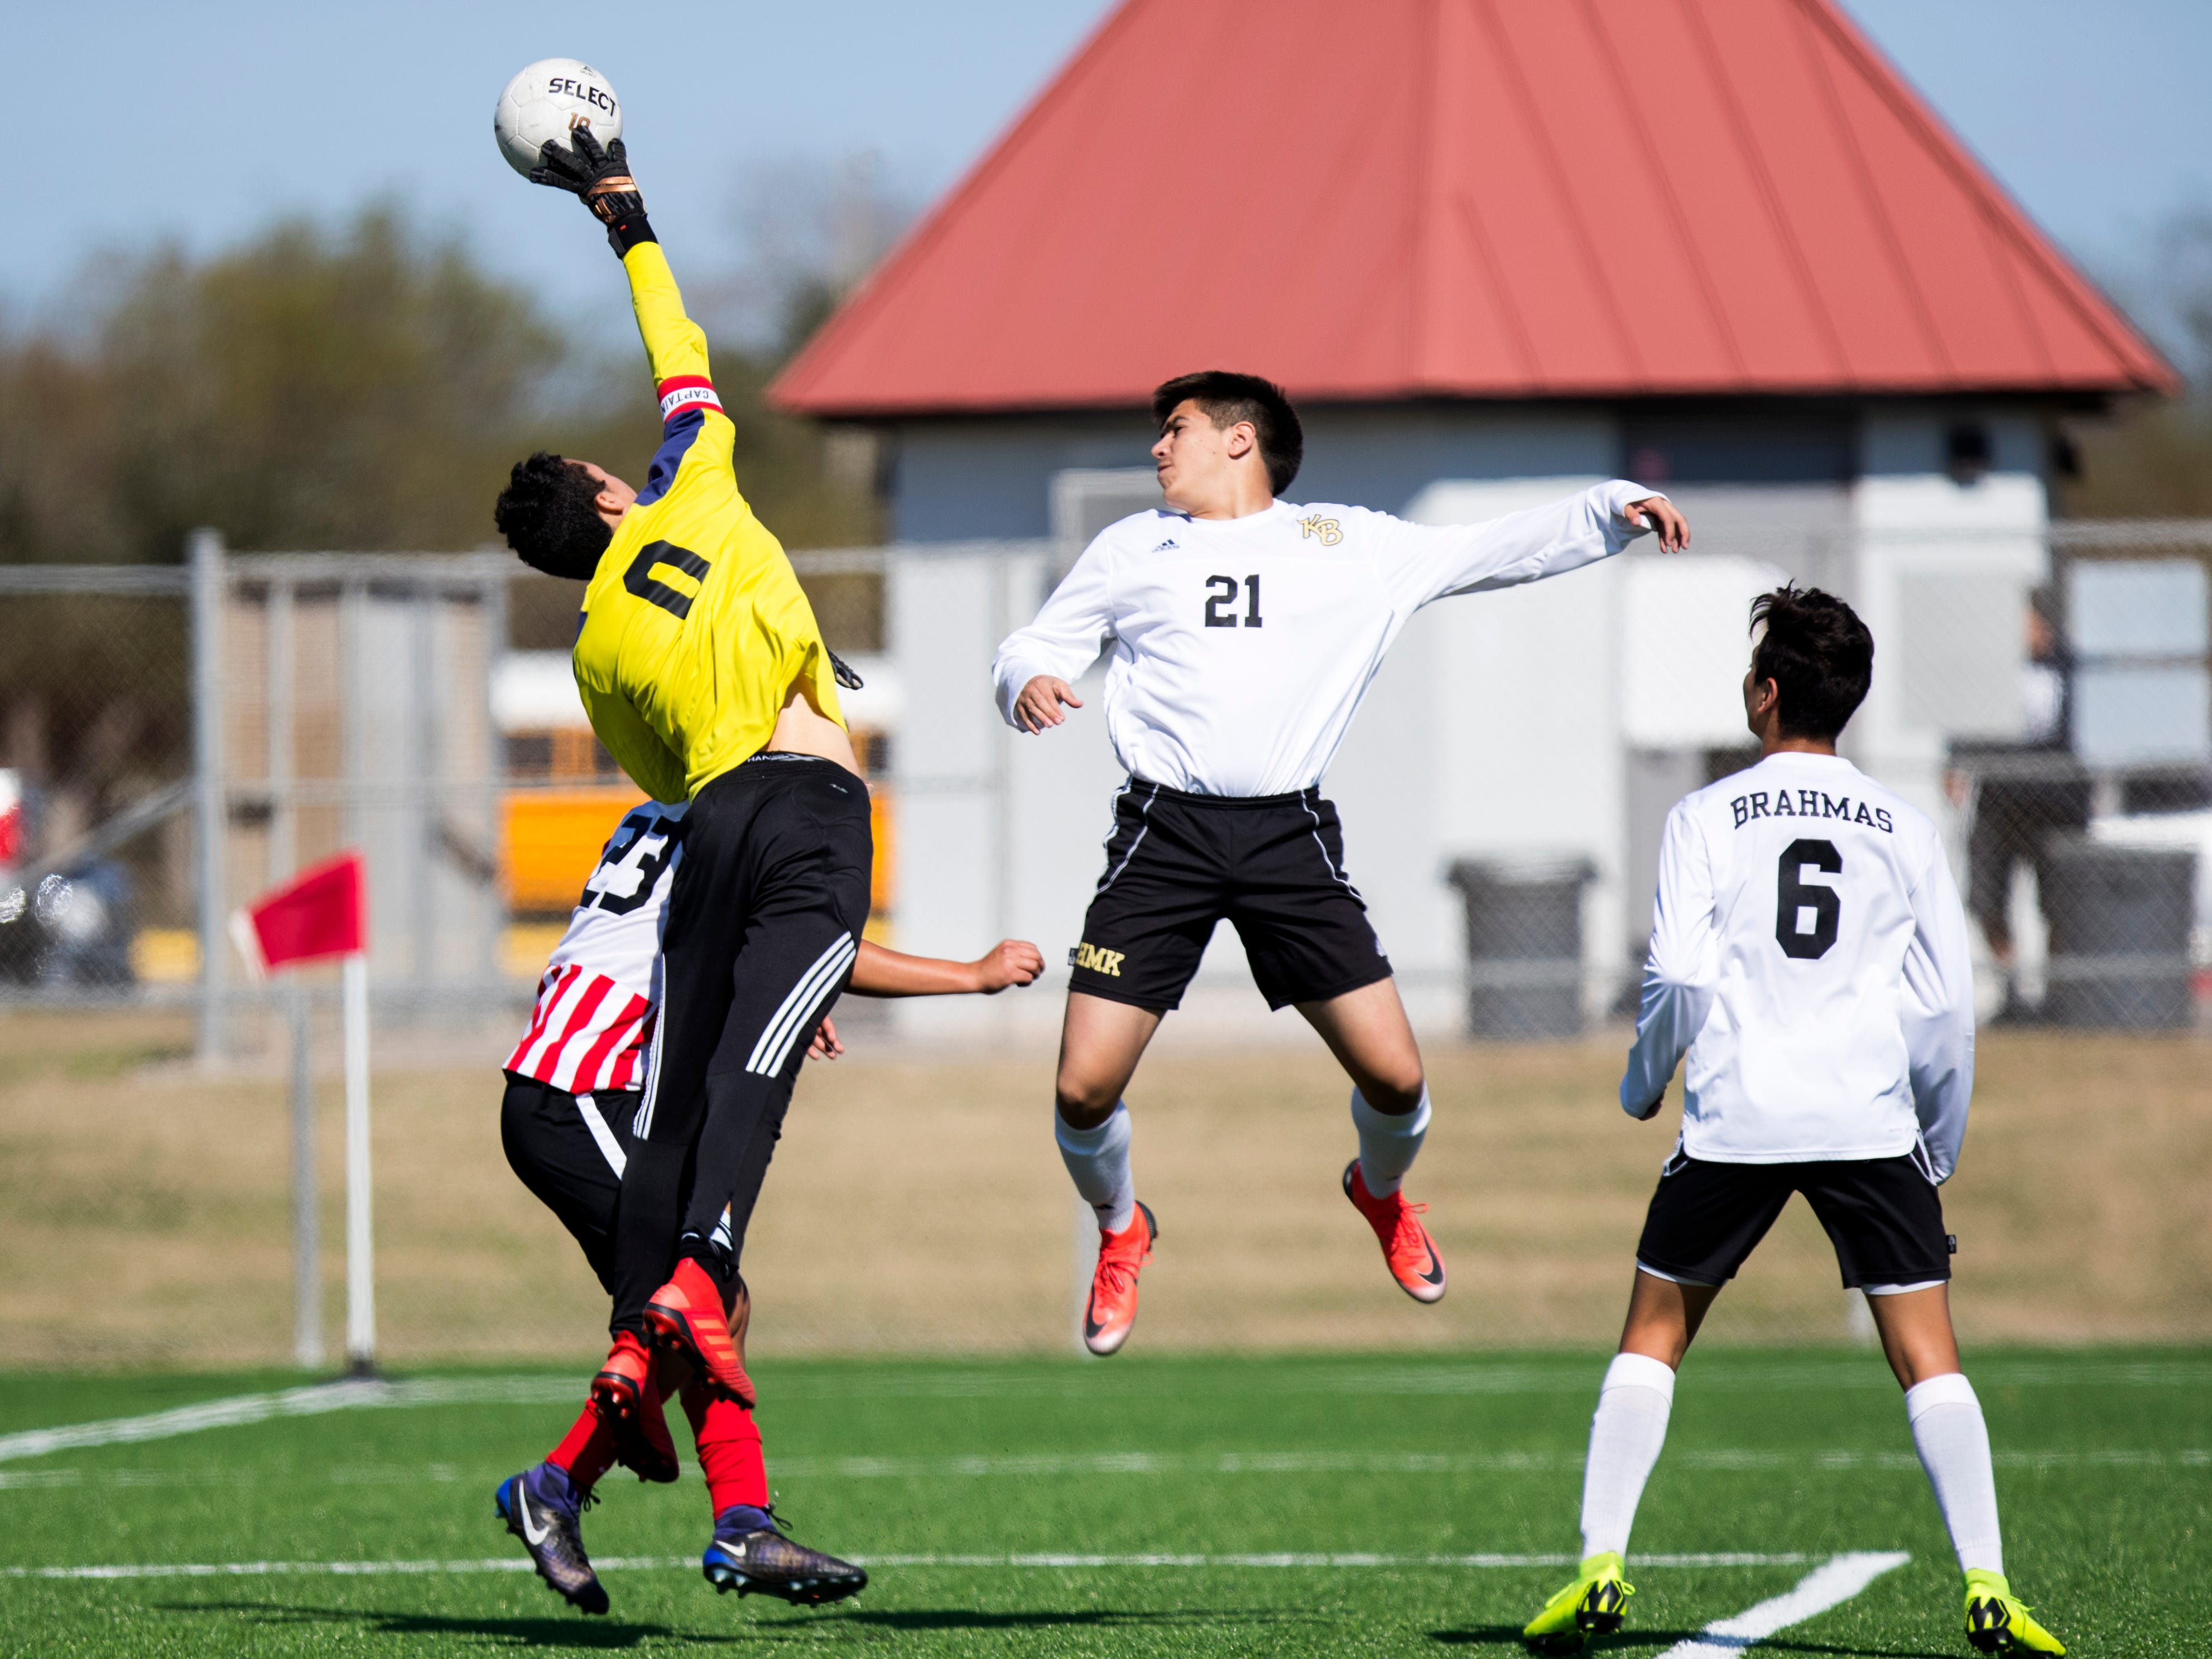 Kingsville's goalie blocks the ball as Kingsville's Oscar Ayarzagoitia jumps up (21) to deflect the ball in the Mira's Soccer Tournament at Cabaniss Field on Thursday, January 10, 2019. Ray won the game 2-0.